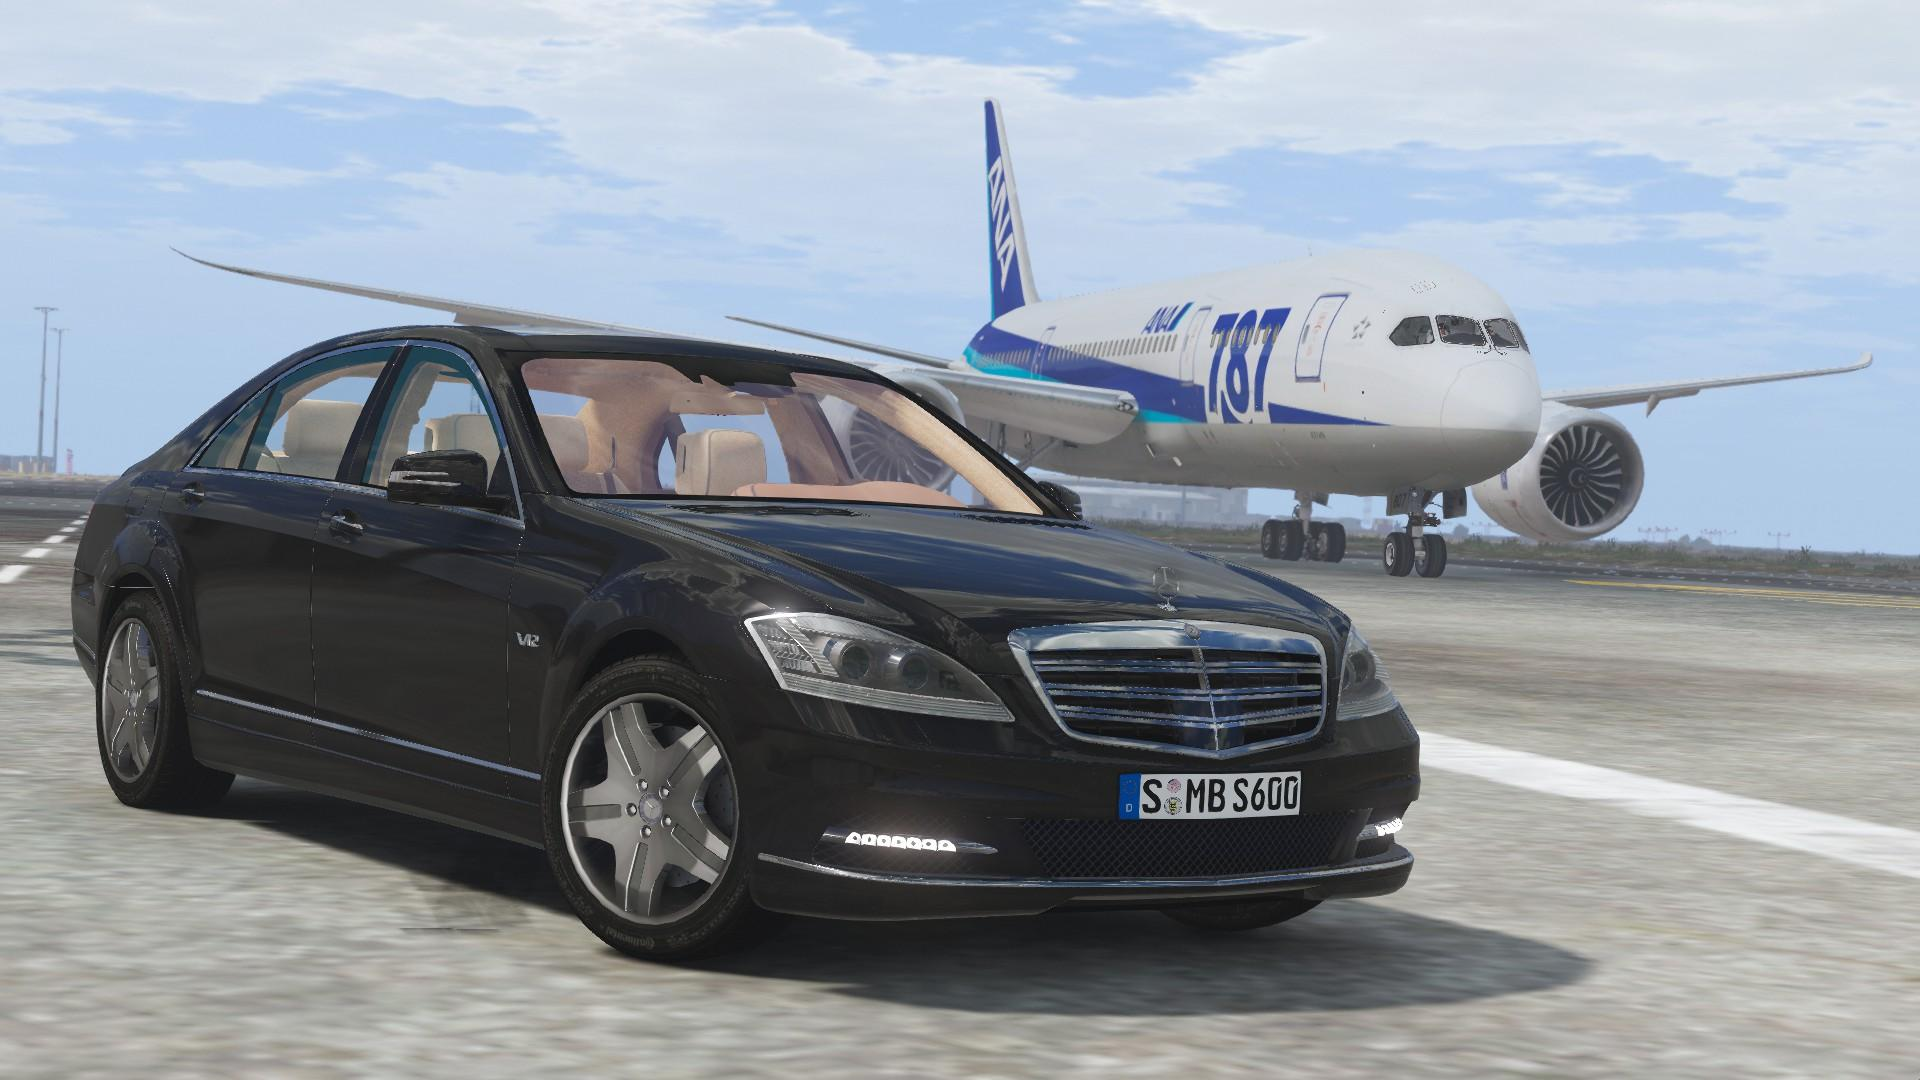 2010 mercedes benz s 600 l add on tuning gta5 for Mercedes benz add